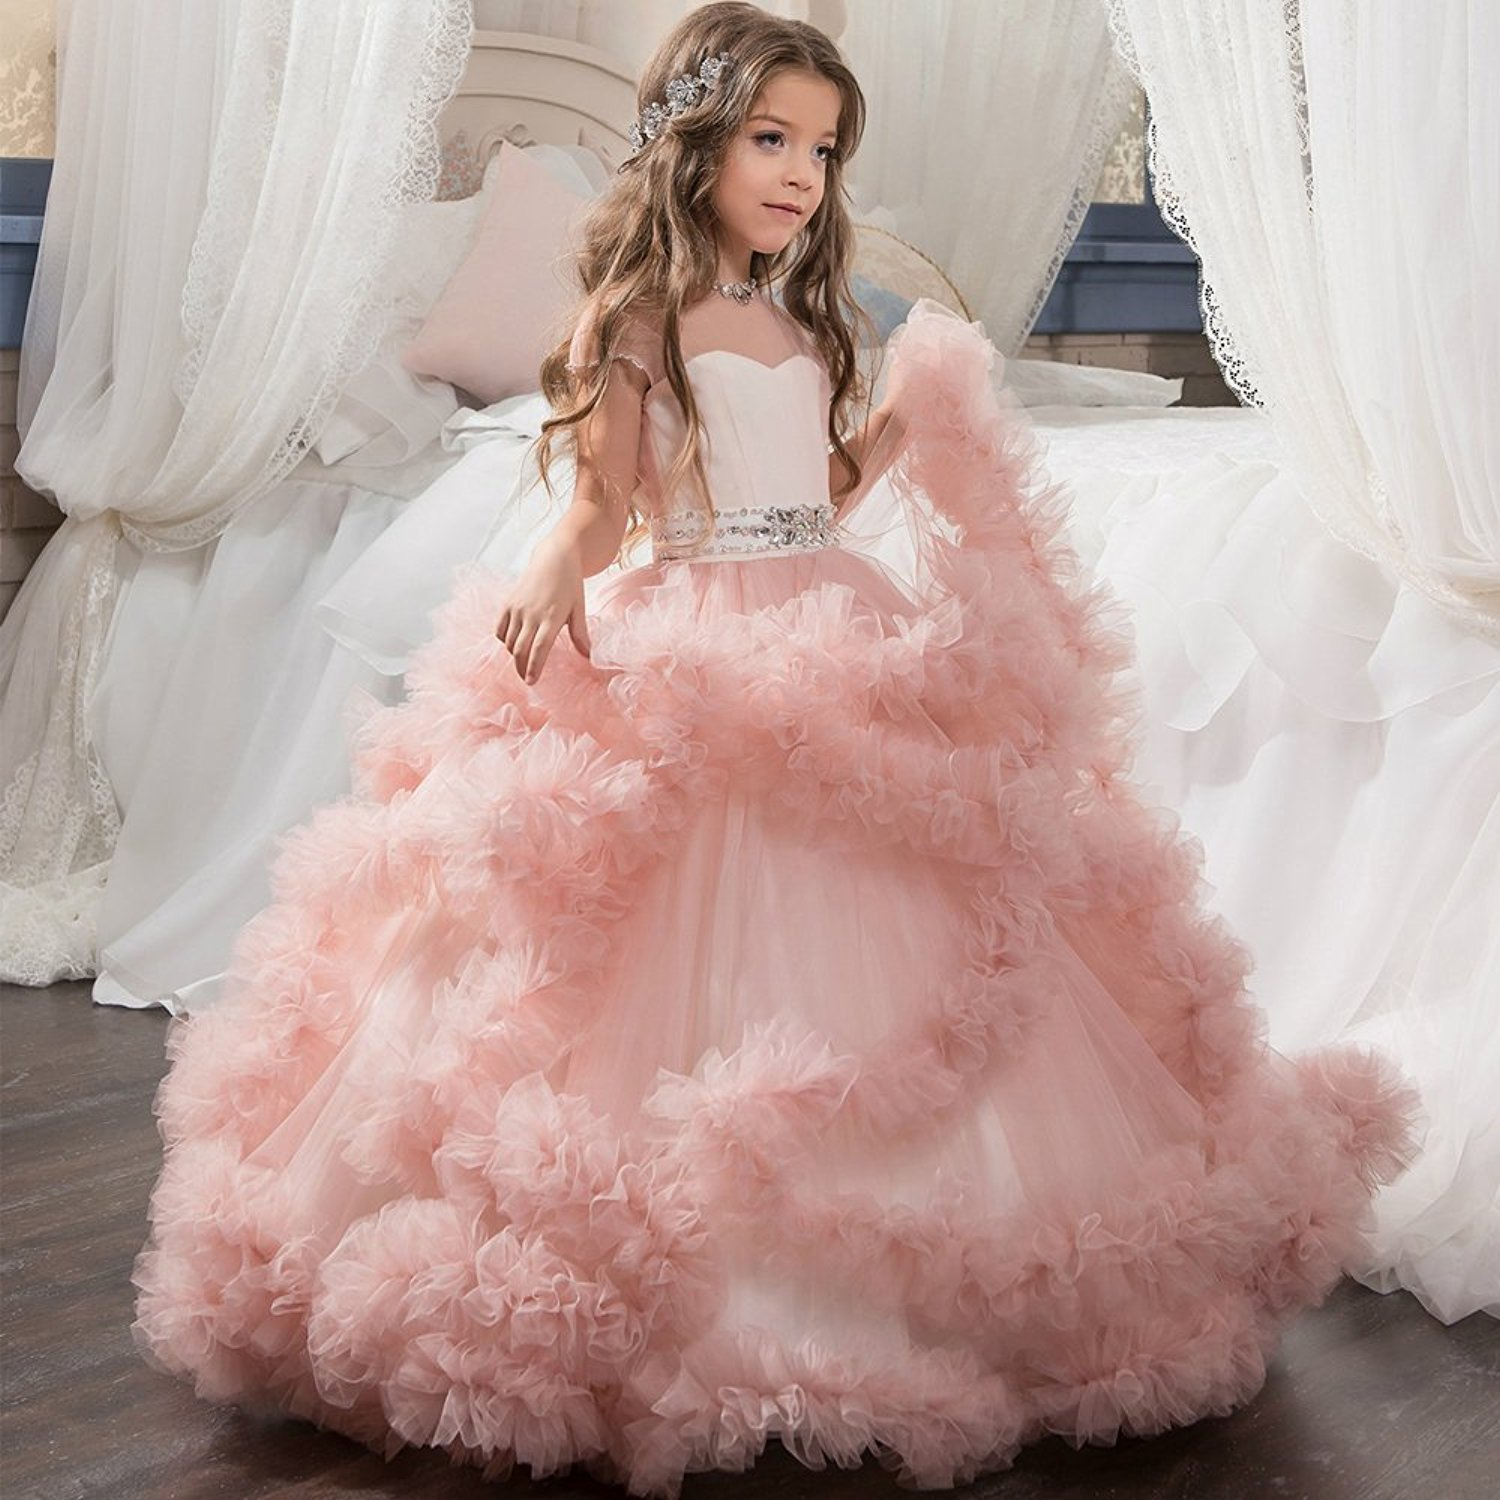 girls dress 10 to 12 years wedding teenager clothes kids party Dresses pink long dress elegant prom evening dresses for girl flower girls blue wedding dresses for little girls dress evening party dresses summer teens big girl wedding dress 3 12 years